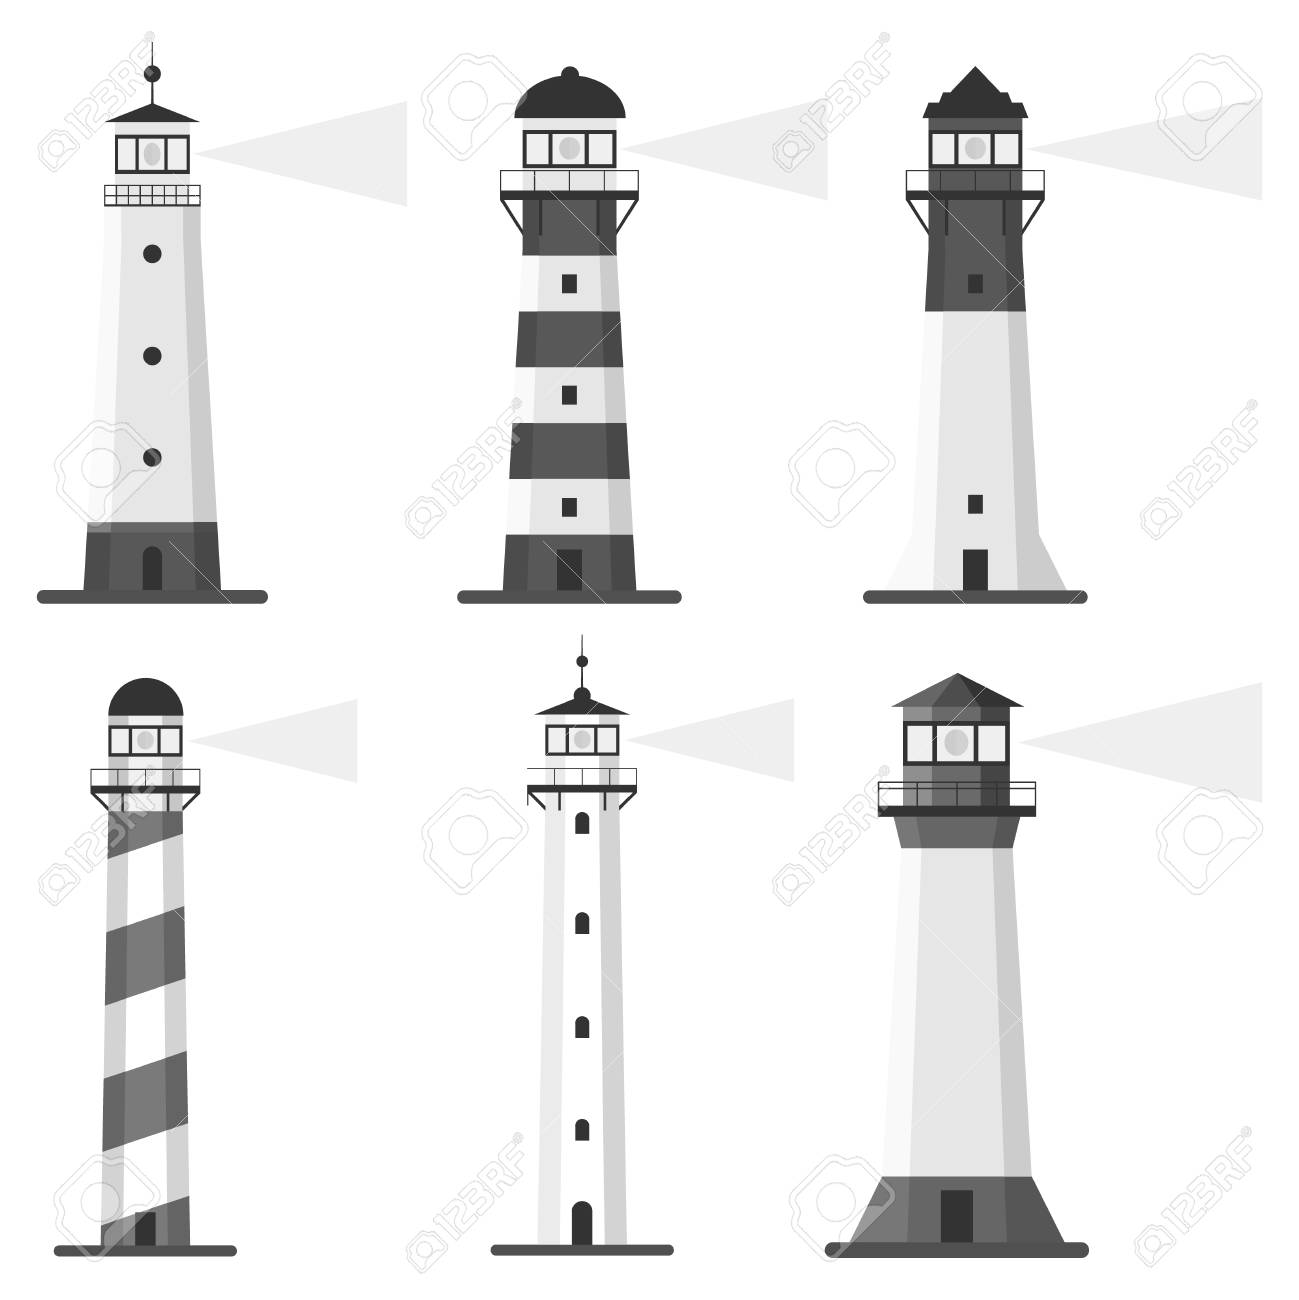 How to set the lighthouses 82